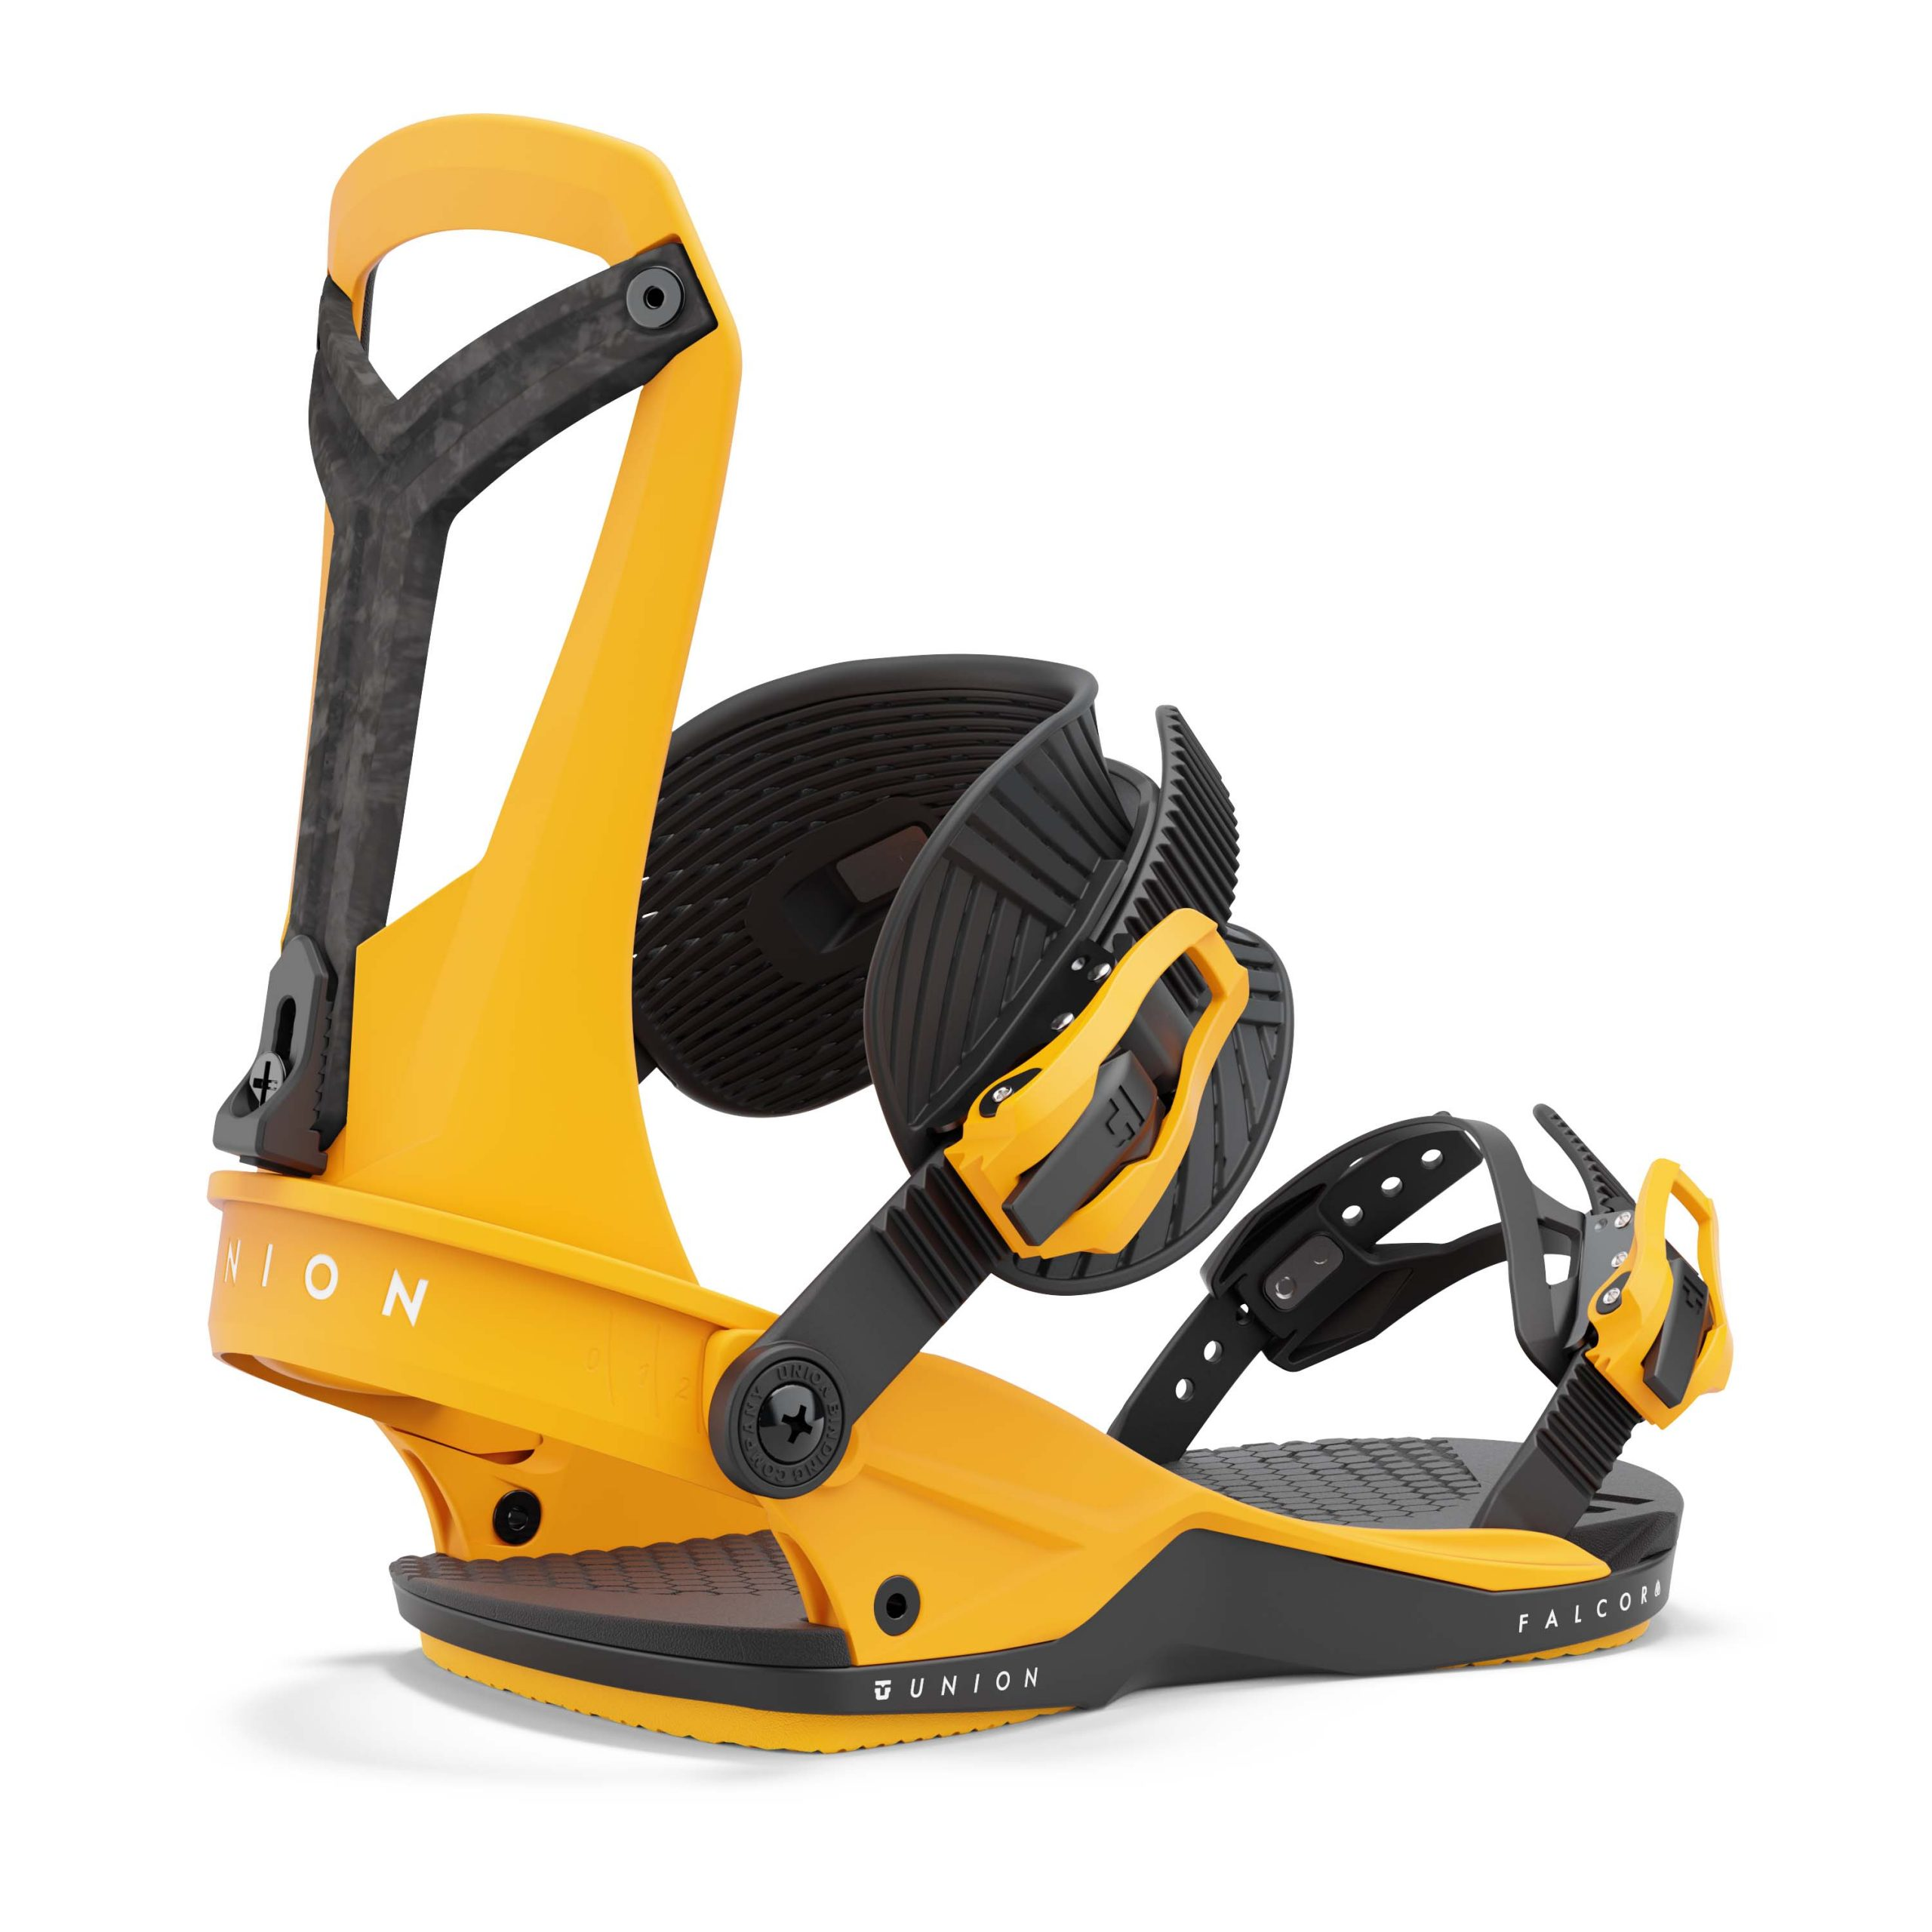 Union 21/22 Snowboard Bindings